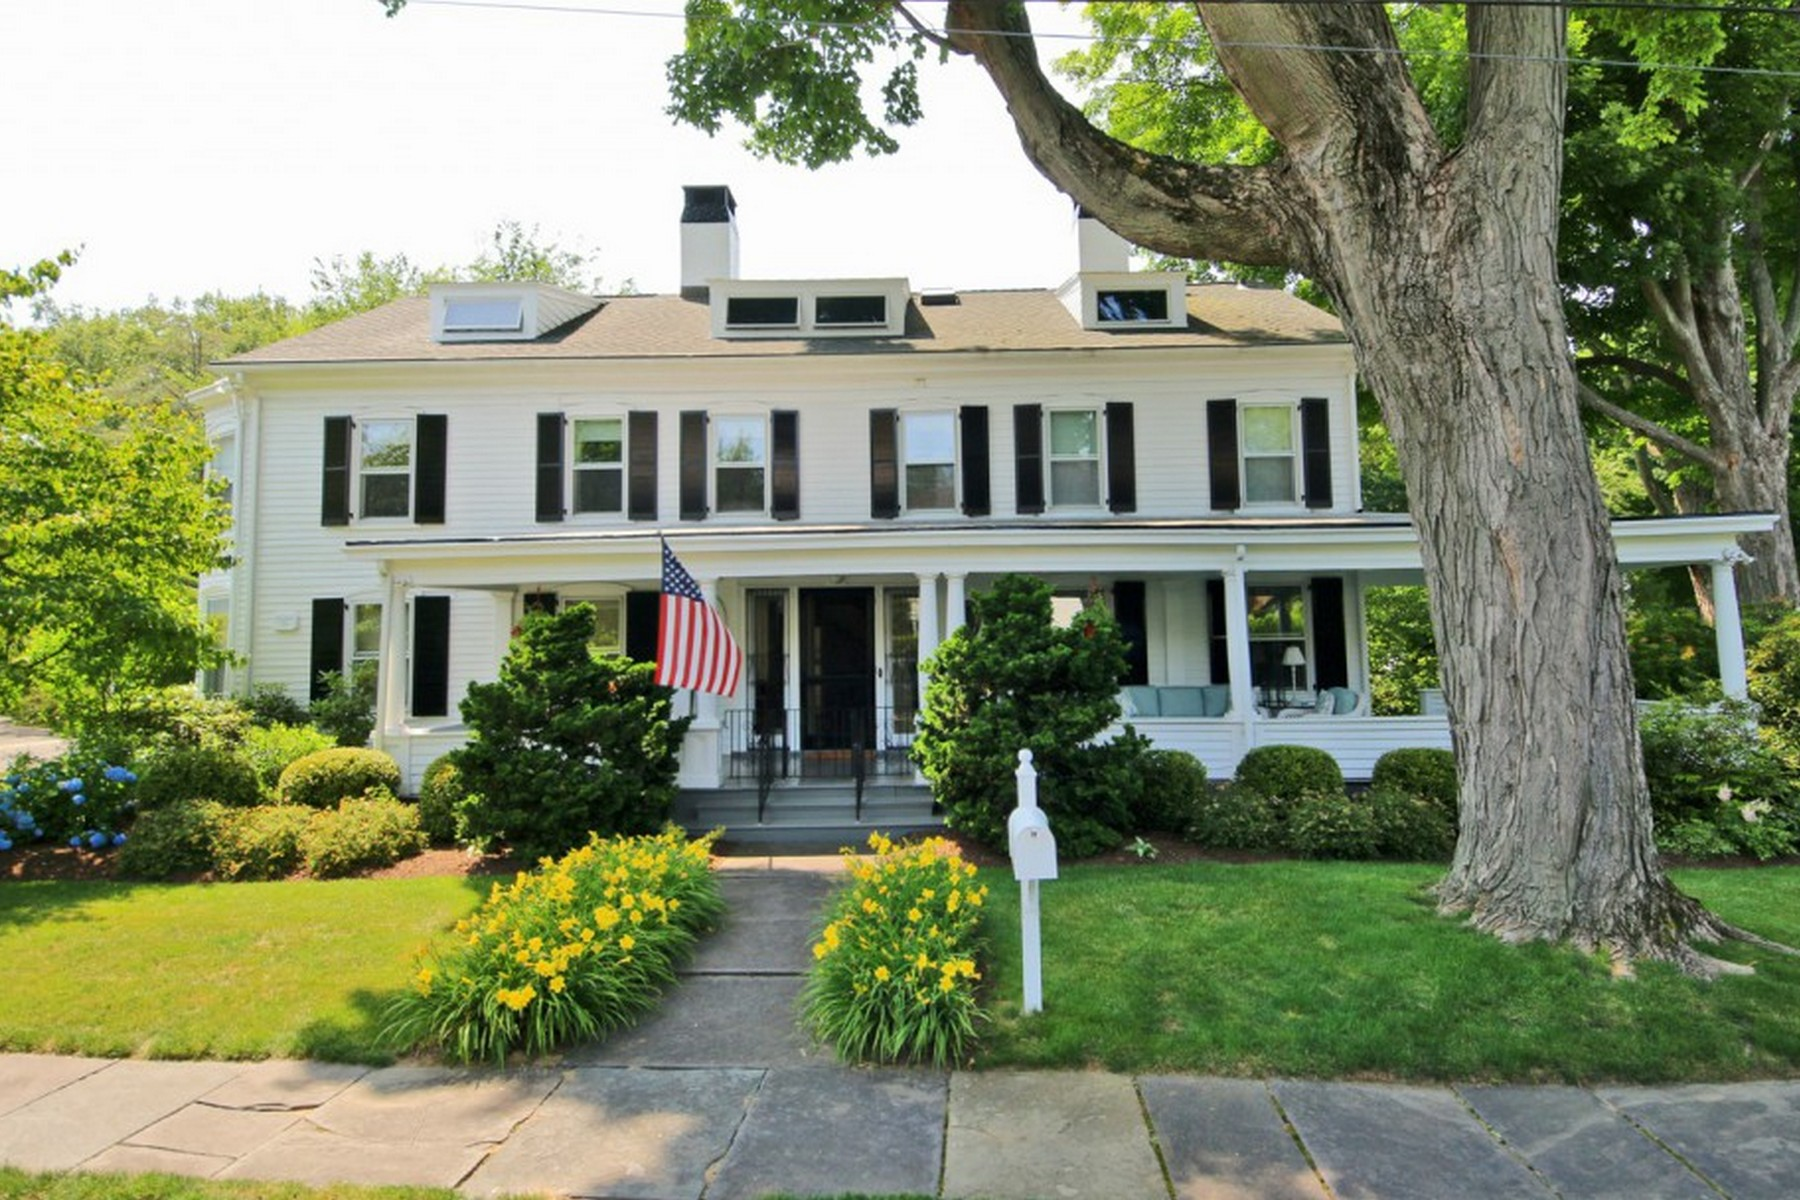 Single Family Home for Sale at PAUL SHEFFIELD HOUSE - SOUTHPORT VILLAGE 72 Willow Street Fairfield, Connecticut 06890 United States